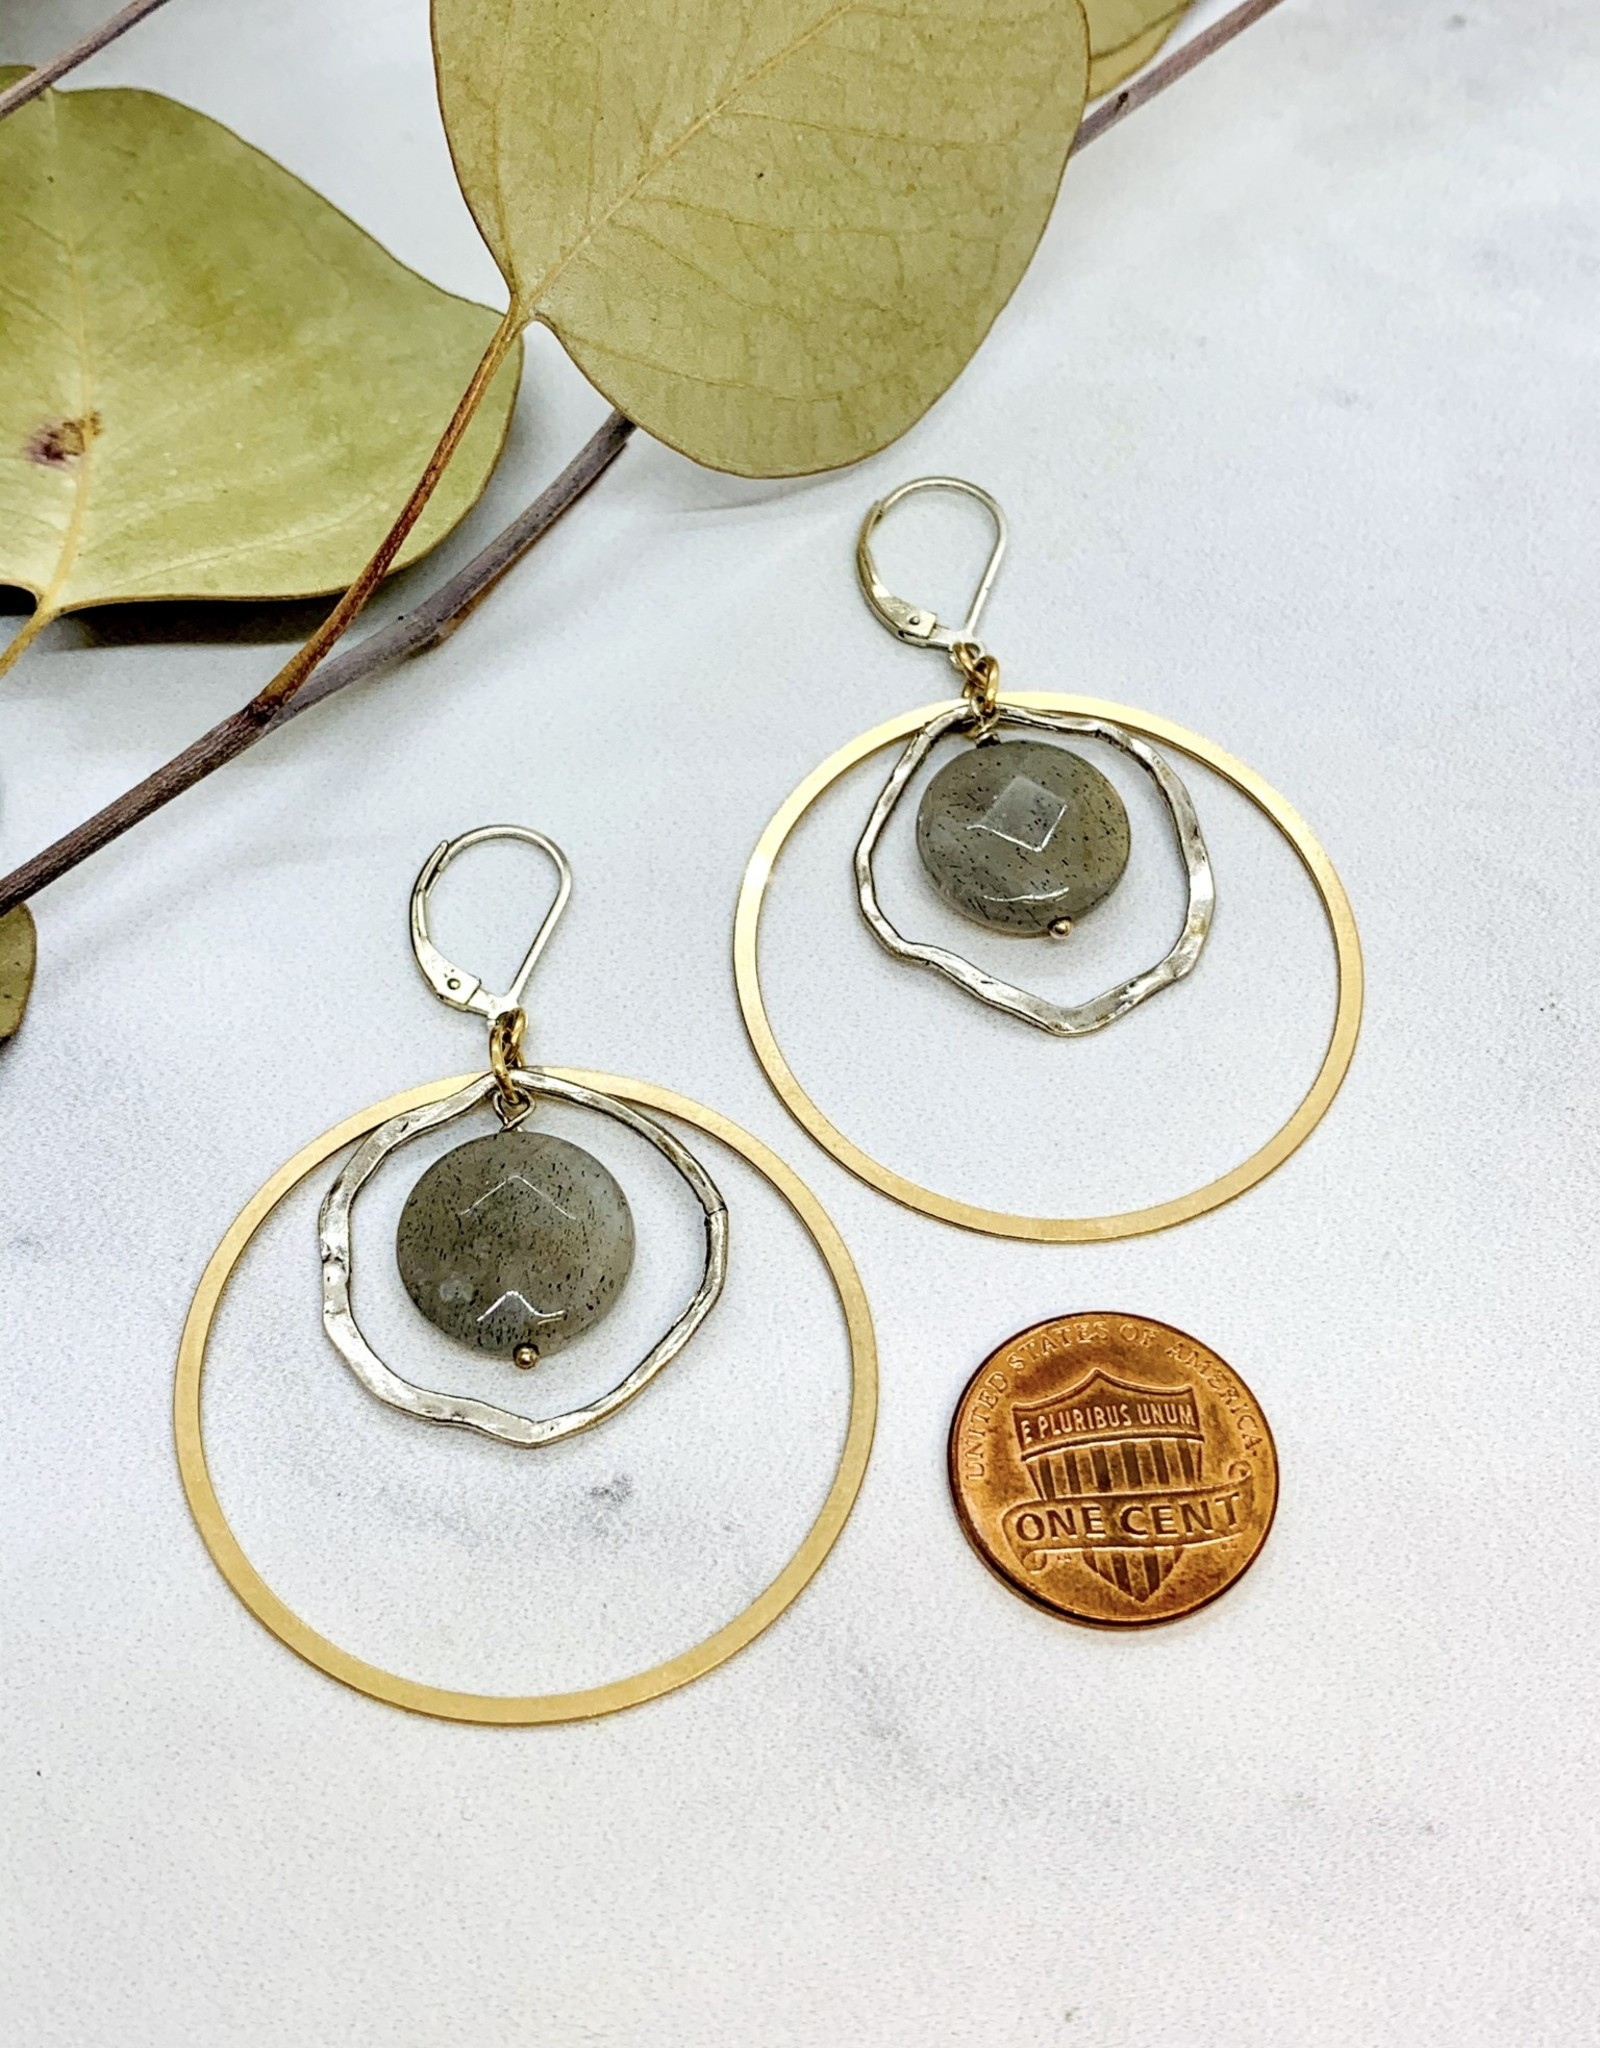 EVANKNOX Handmade Sterling Silver Earrings with 14 k g.f. ring, shiny organic circle, large labradorite coin